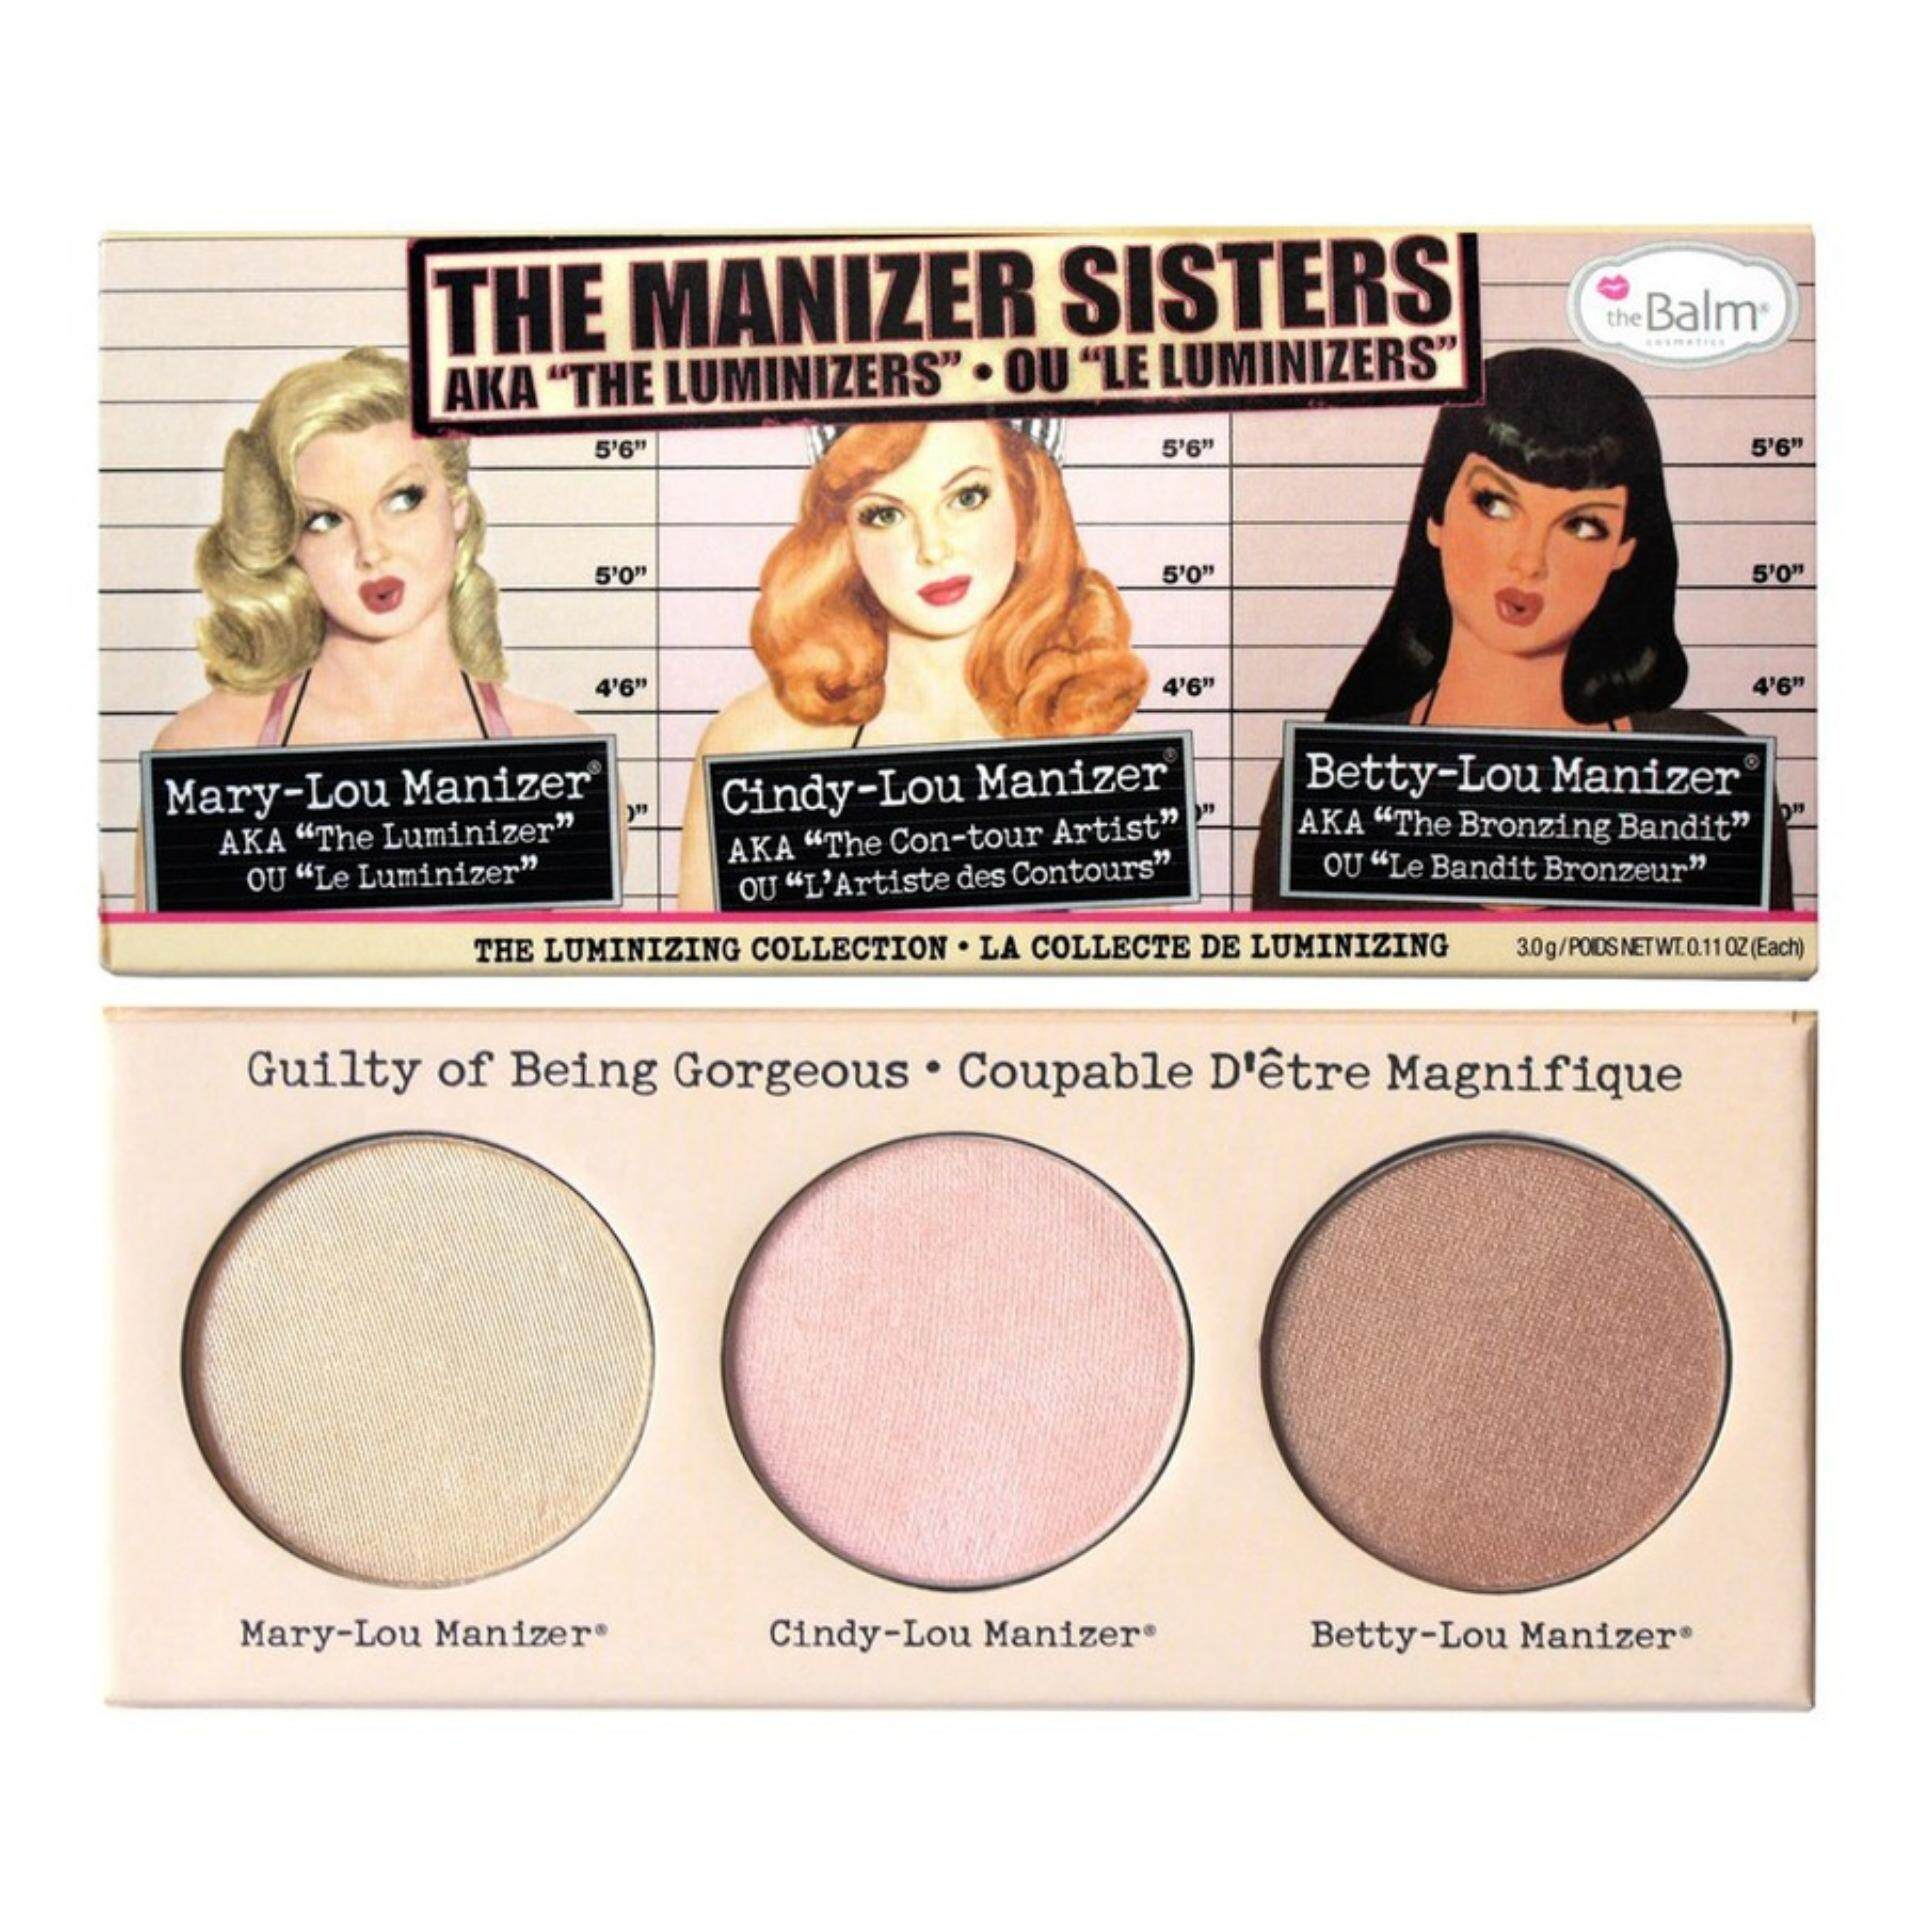 1 set X [MUST HAVE] The Balm The Manizer Sisters (Betty Lou Manizer, Cindy Lou Manizer, Mary Lou Manizer)